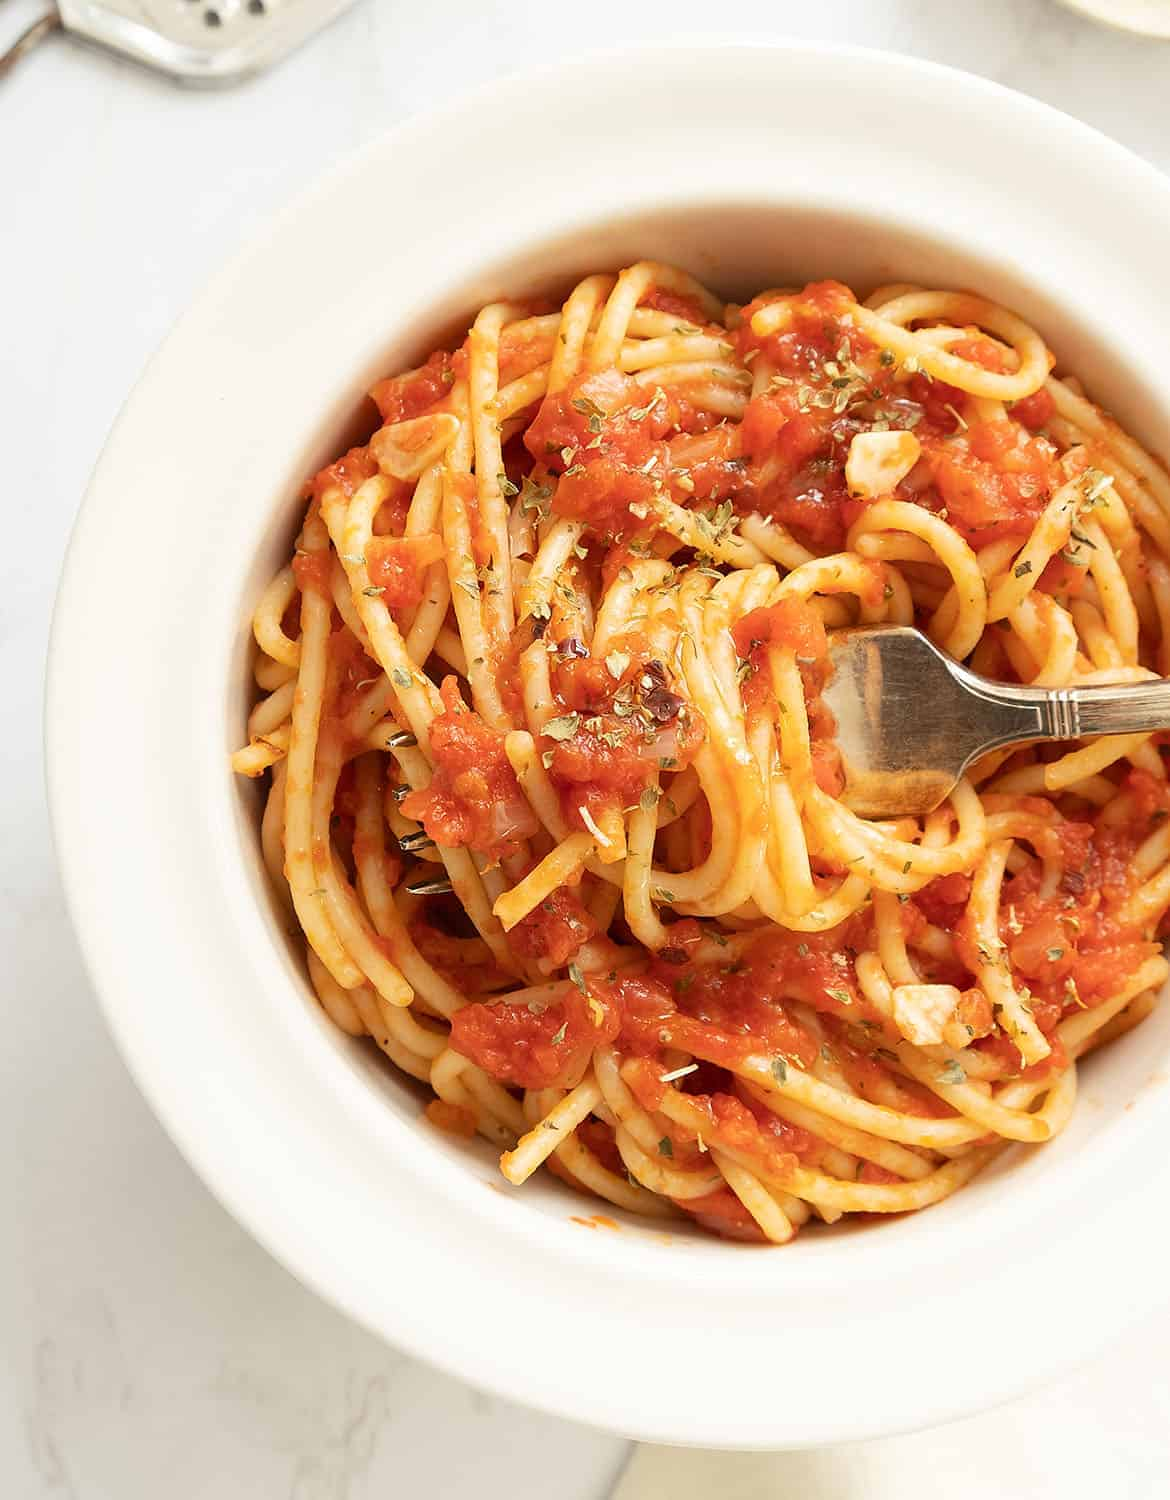 Vegan marinara sauce and spaghetti in a white bowl with a fork - The Clever Meal